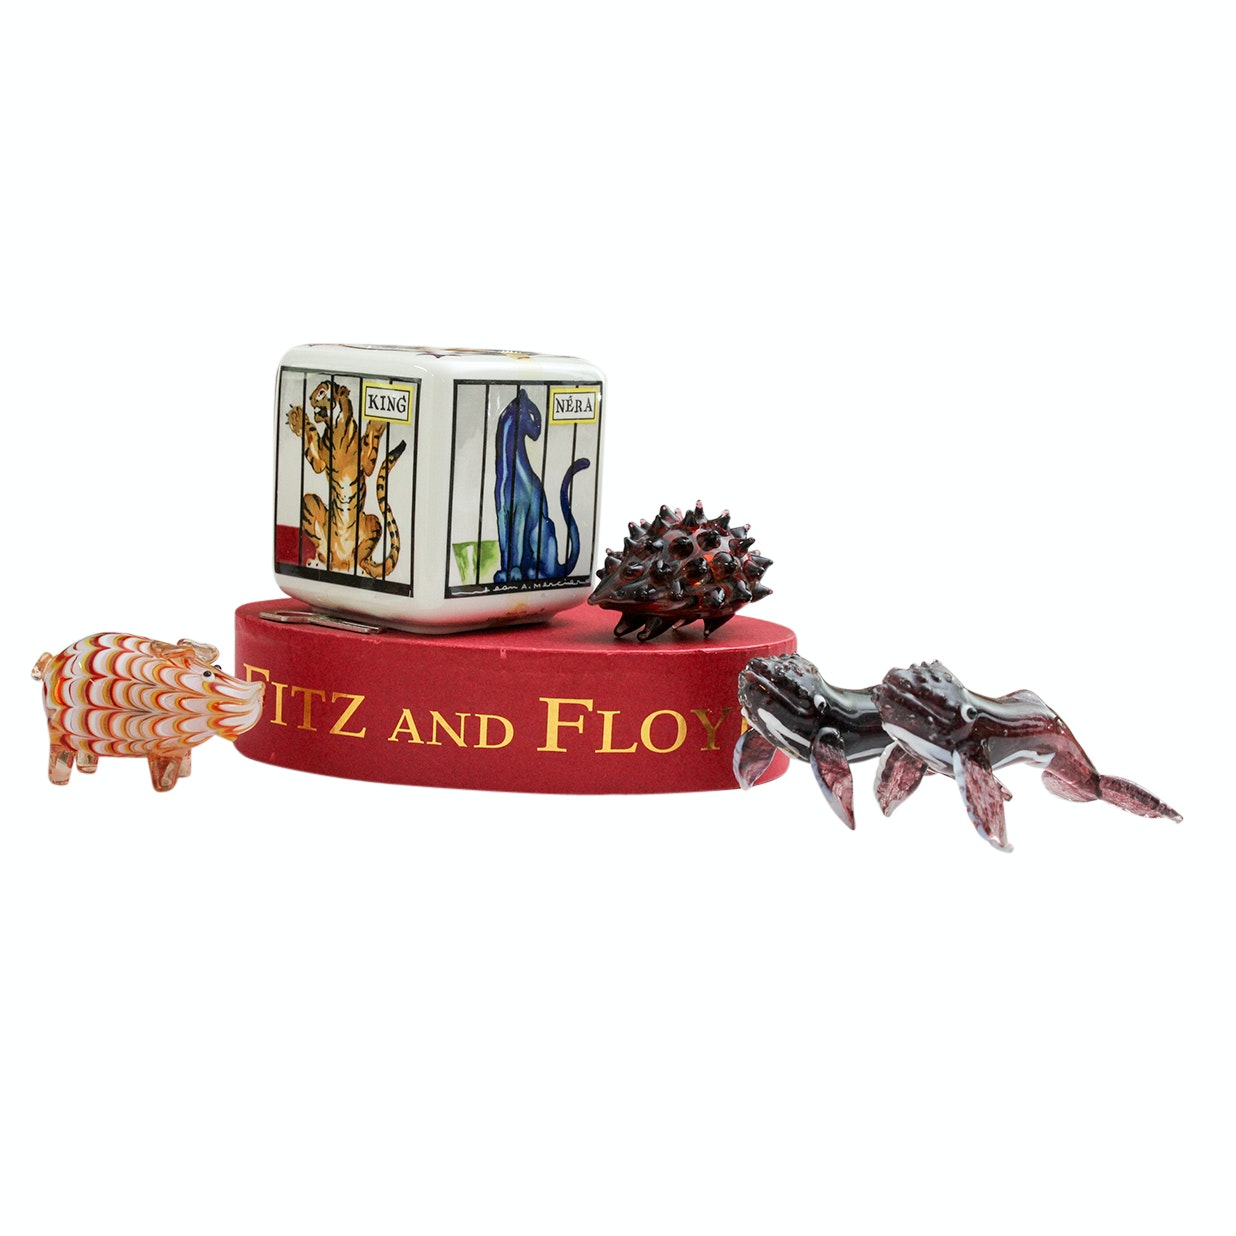 Fitz and Floyd Glass Menagerie Art Figurines and Villeroy & Boch Money Bank